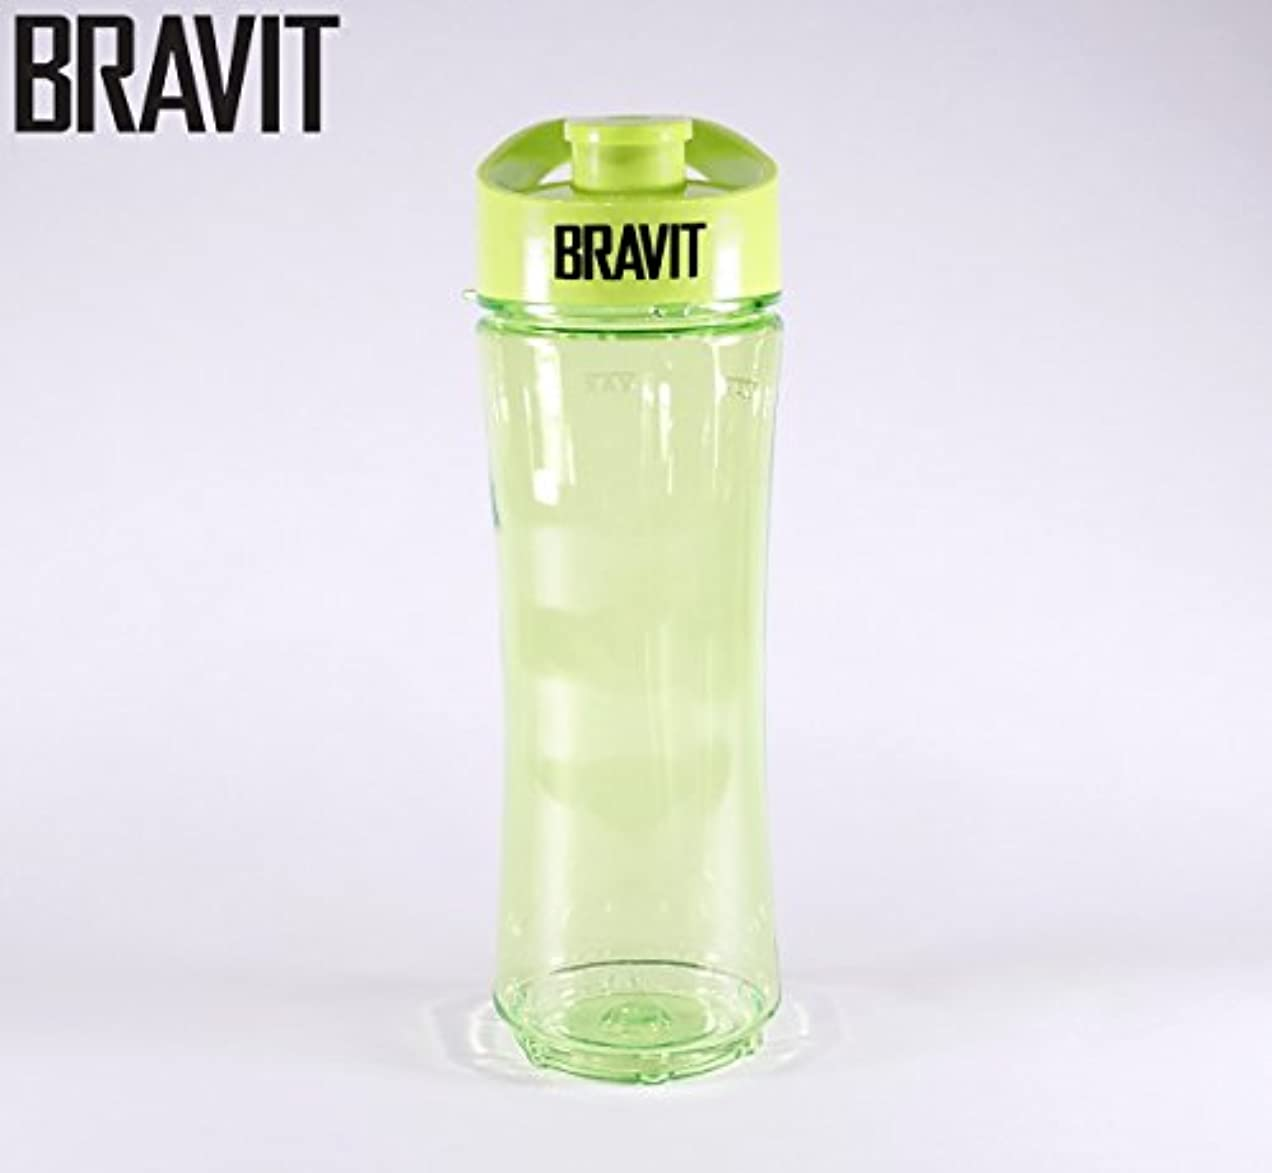 浅いプリーツ批判的にBRAVIT Personal Sports Bottle, Smoothie, Shake Maker with Travel Lead for BRAVIT Personal Sports Blender by BRAVIT